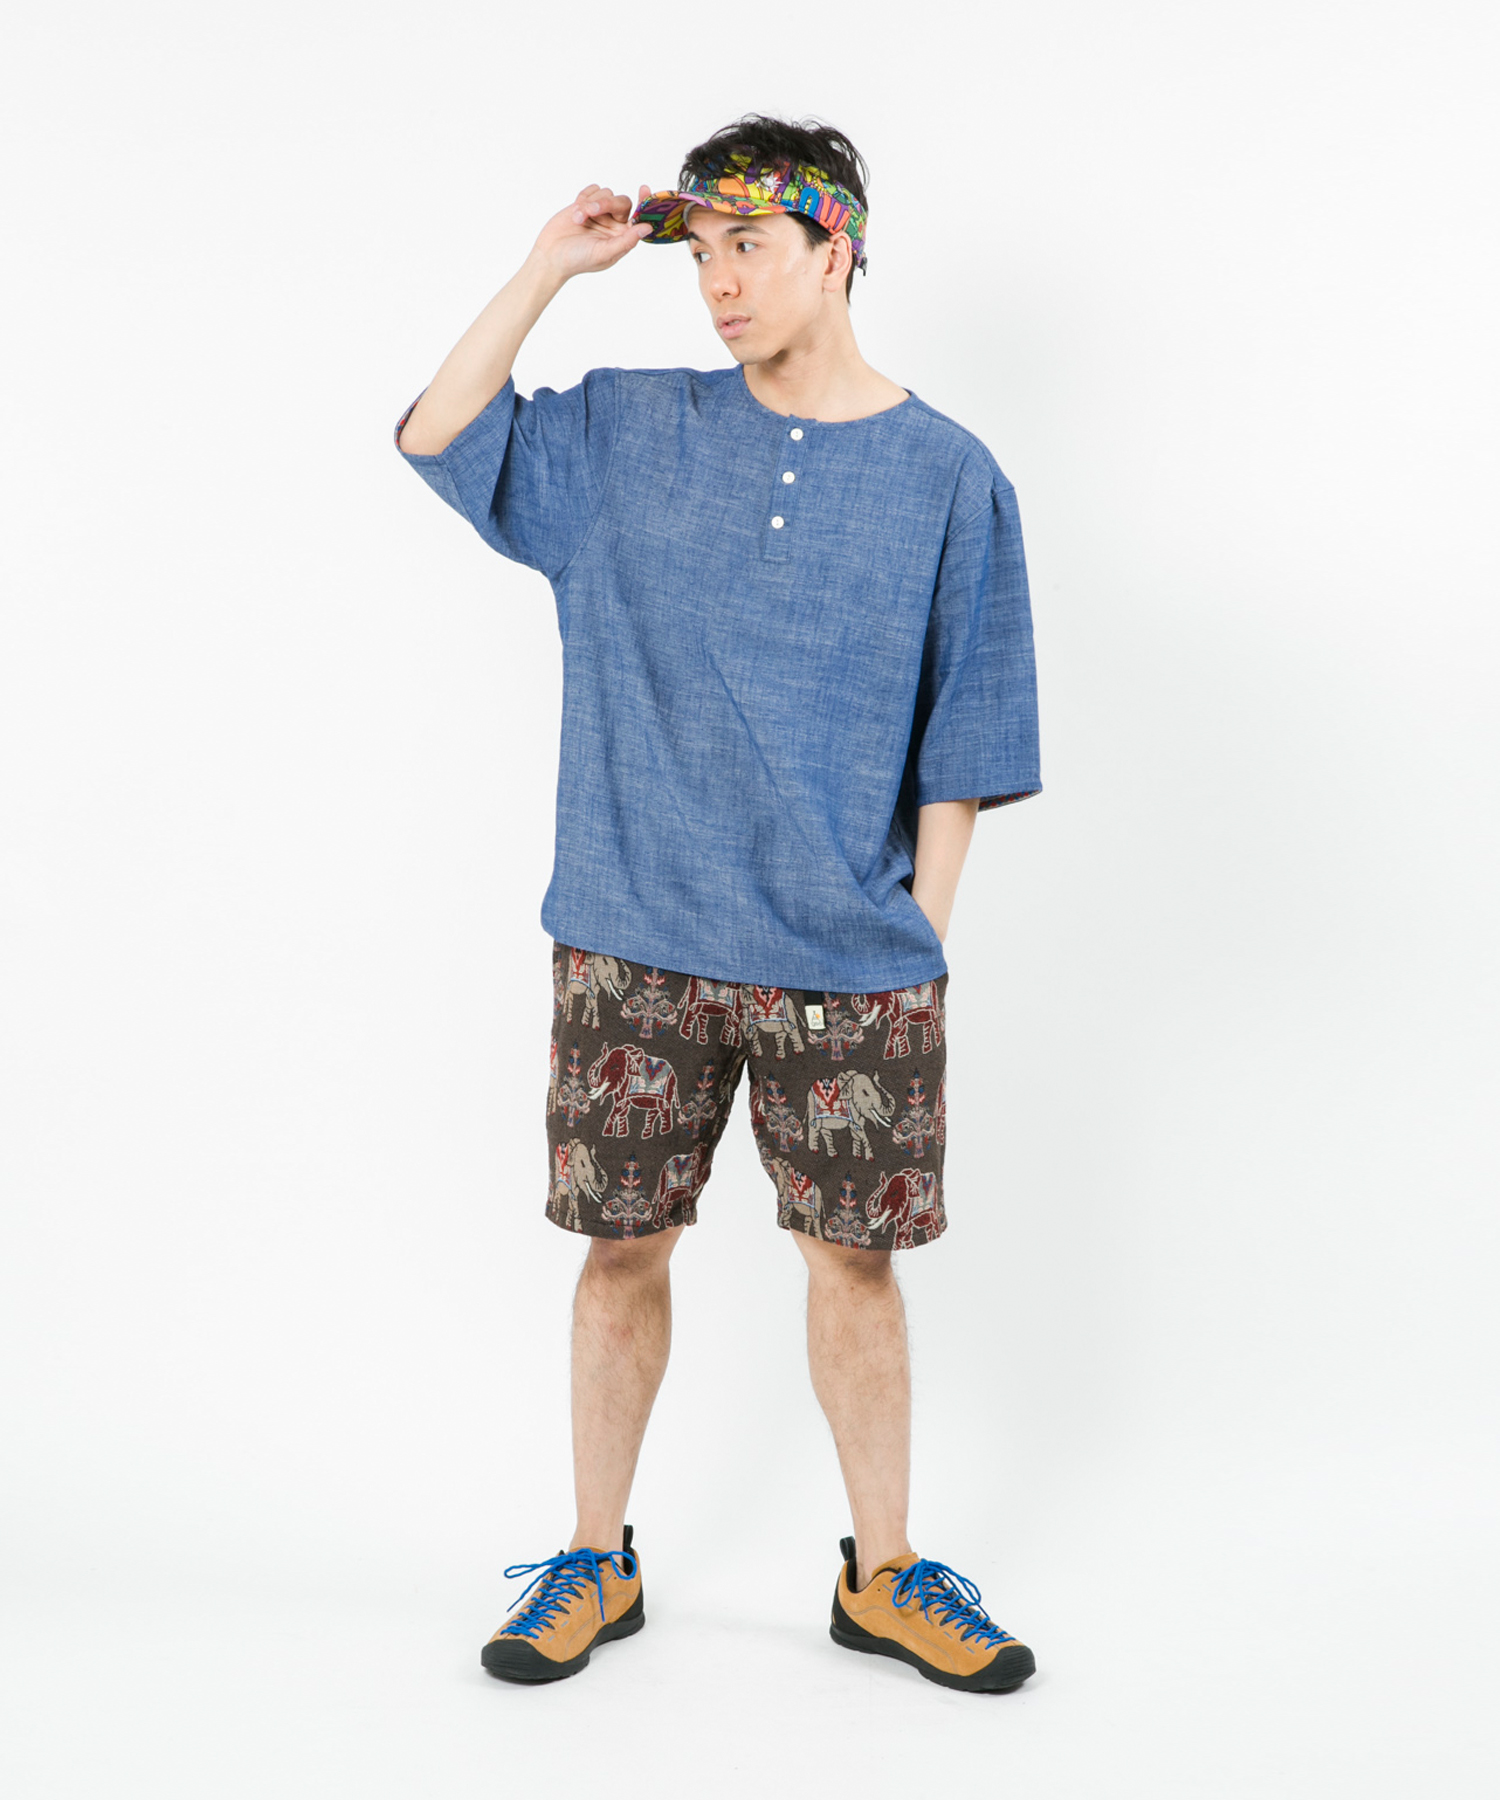 2018 S/S go slow caravan Coordinate Mens5